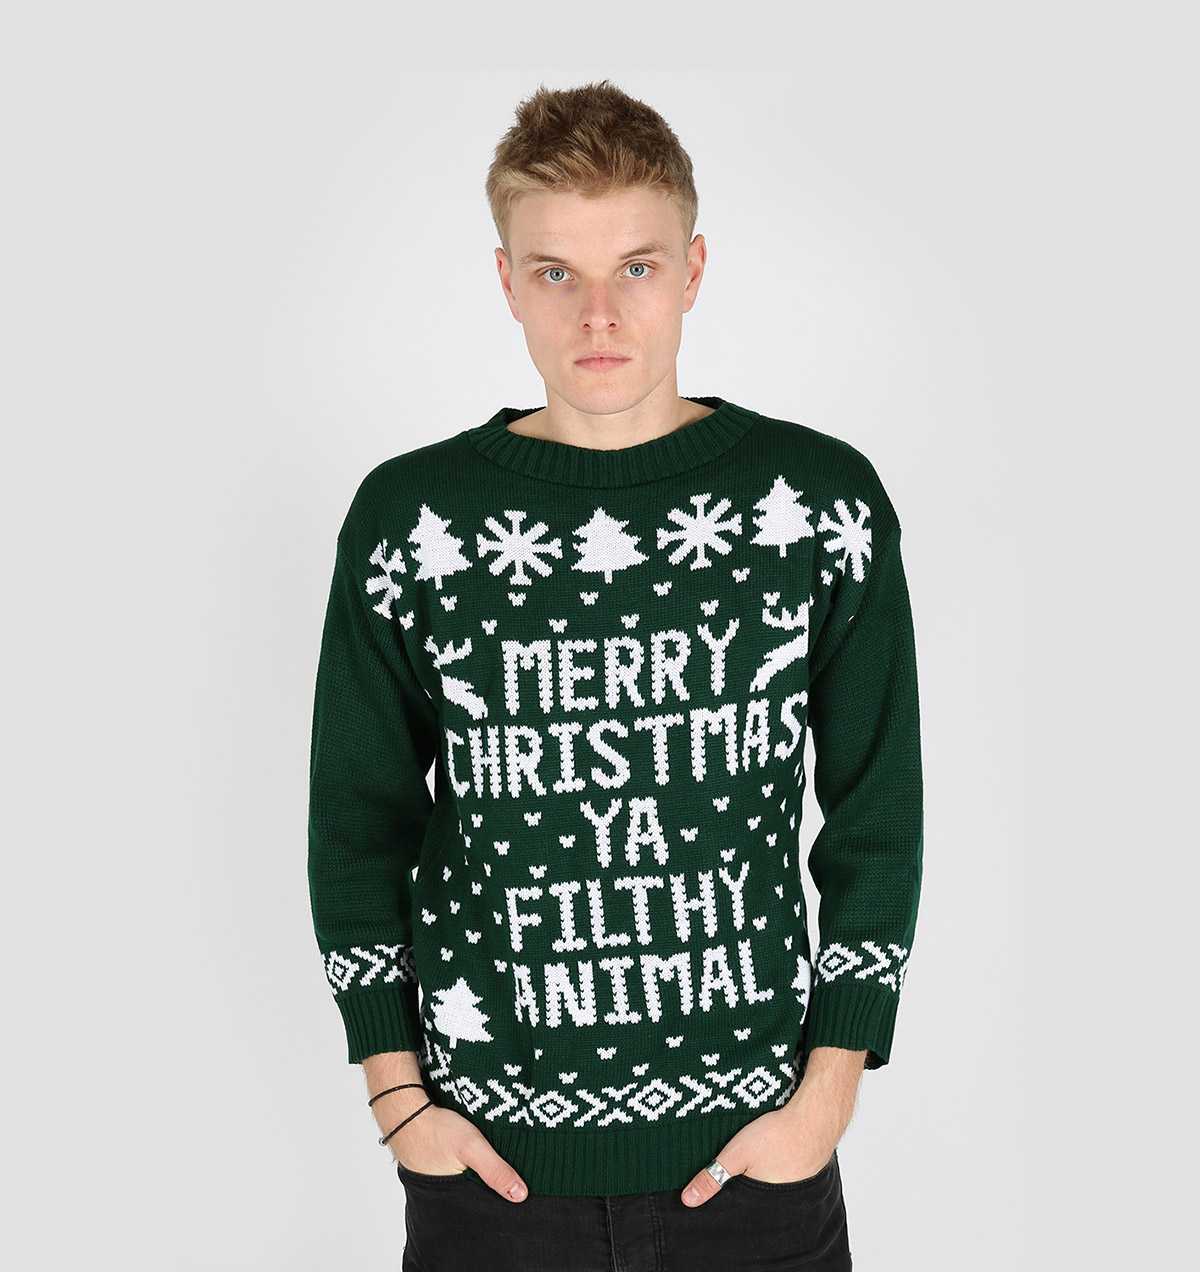 Merry christmas ya filthy animal sweaters